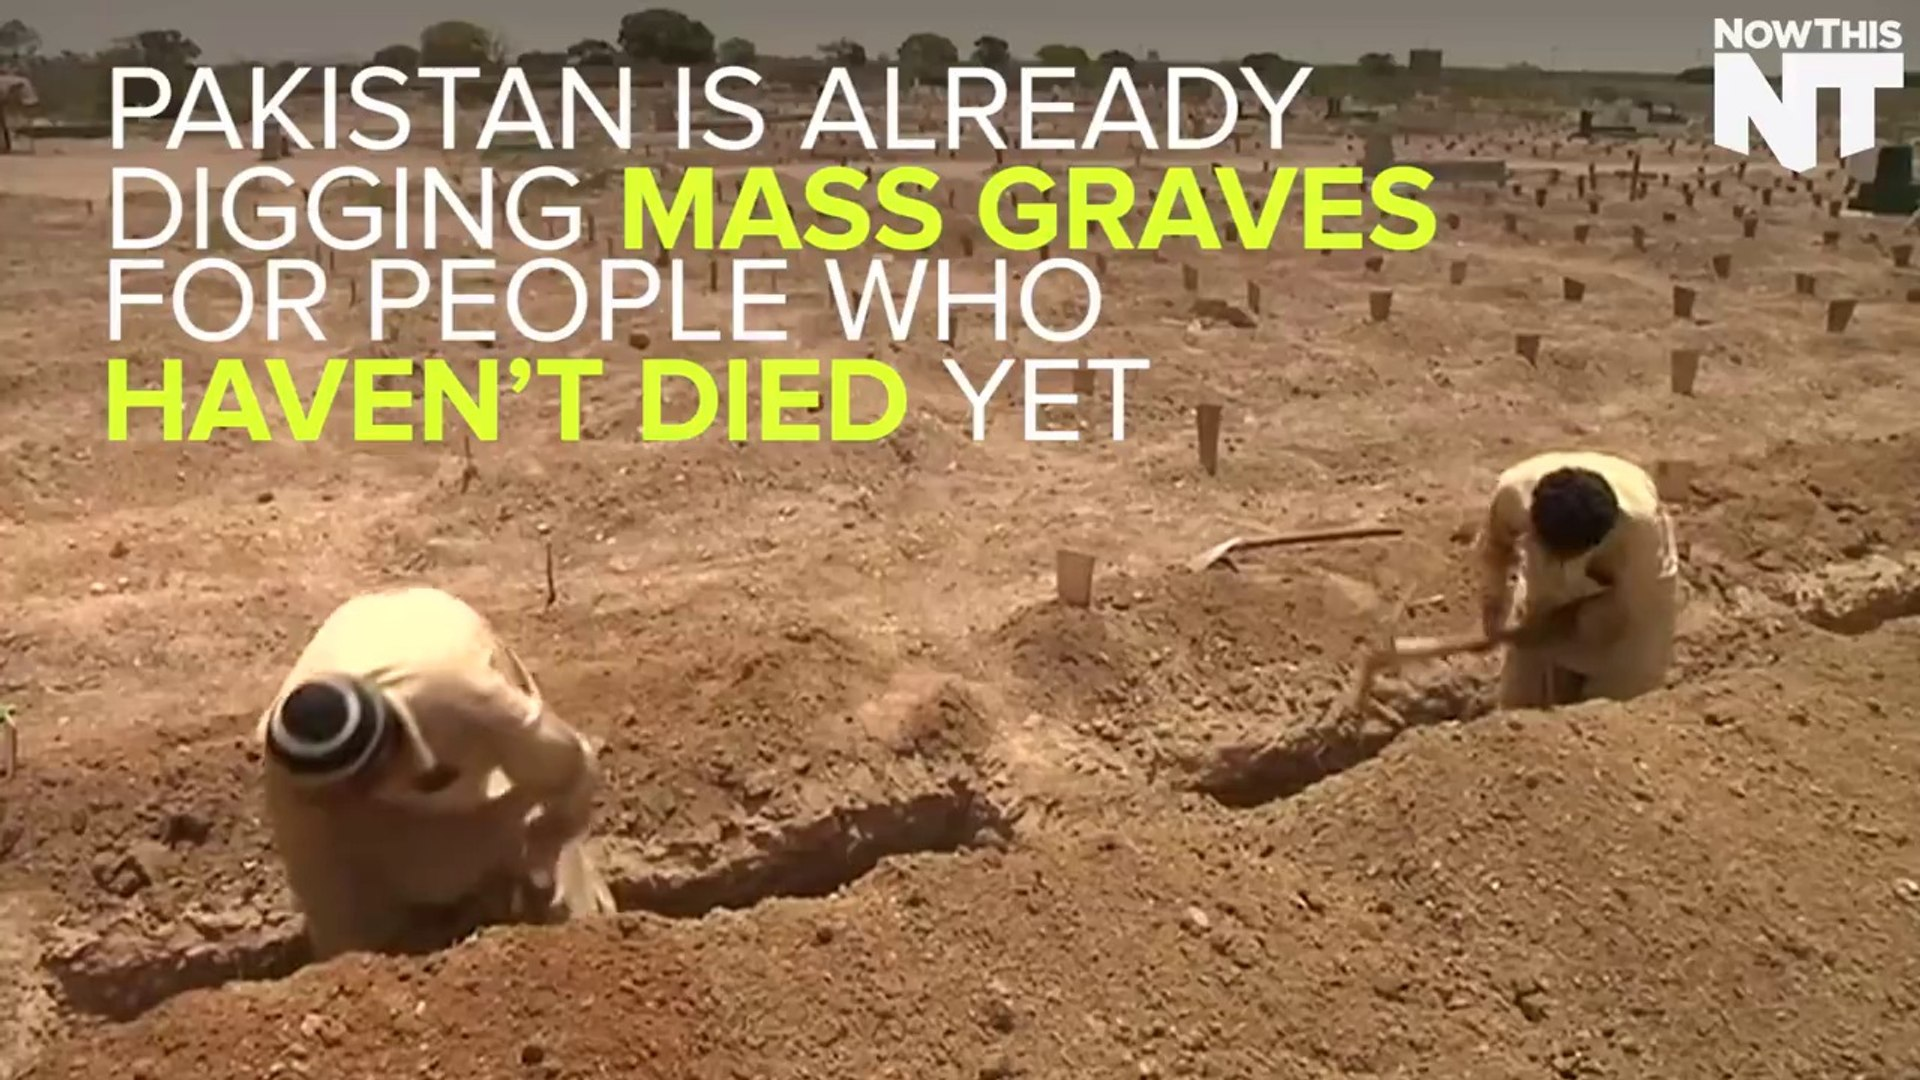 Pakistan is building mass graves for people who haven't even died yet